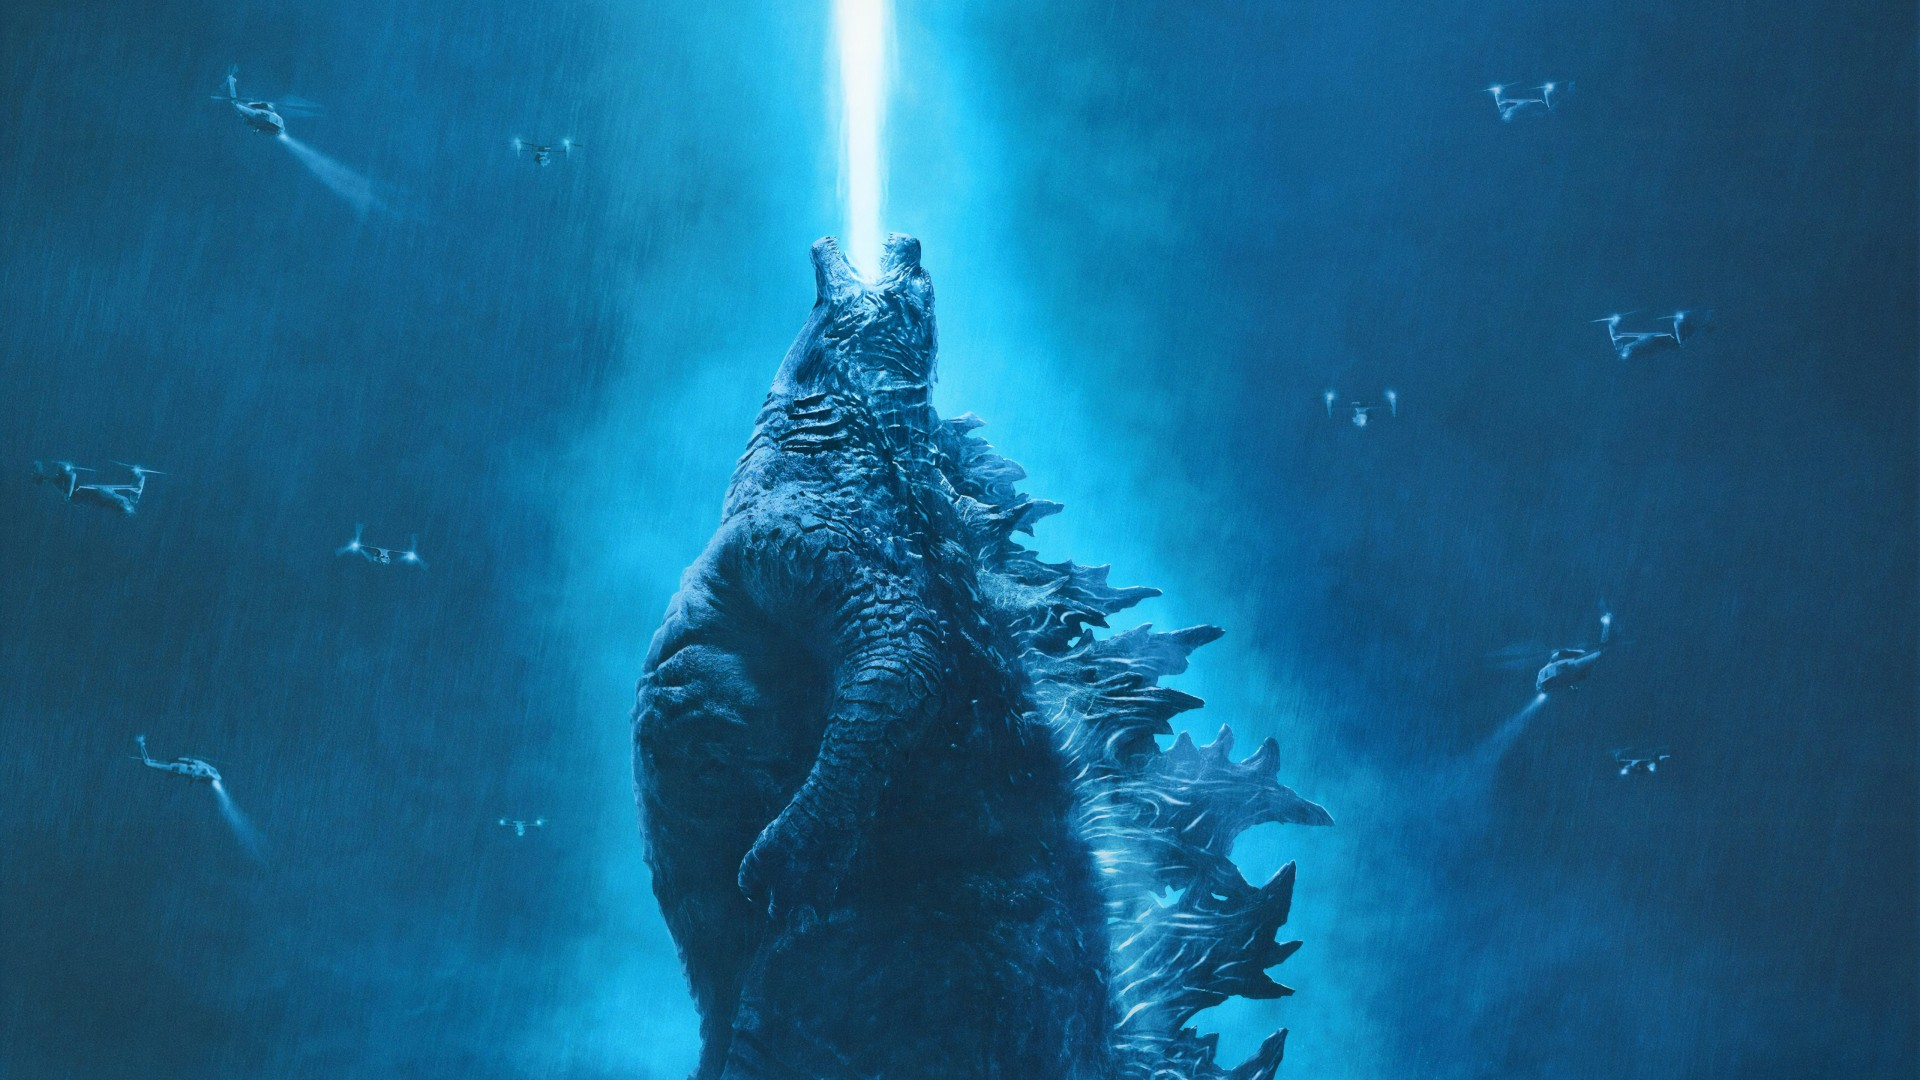 Wallpaper 3d Iphone 6 Godzilla King Of The Monsters 2019 5k Wallpapers Hd